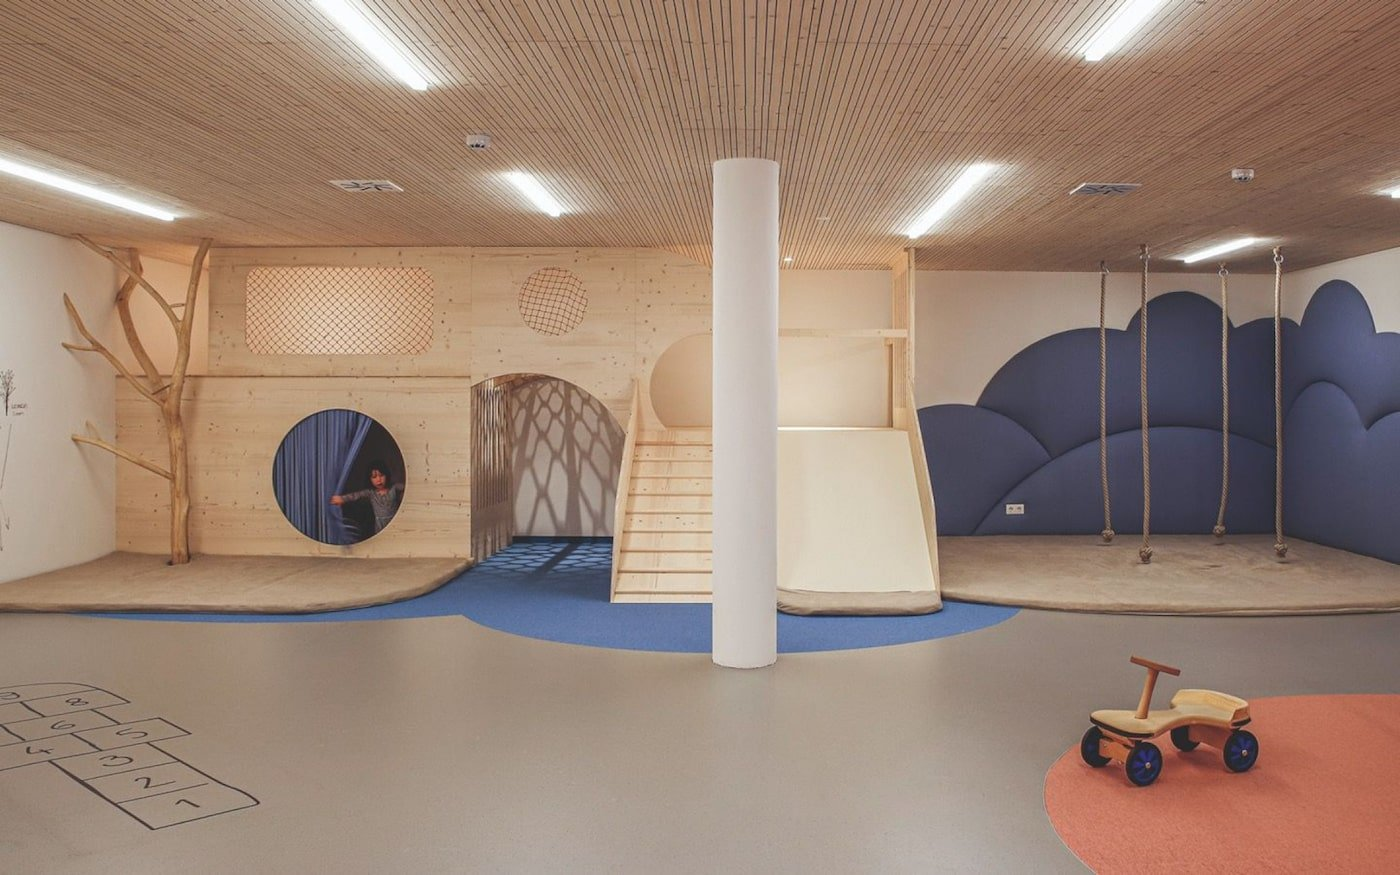 Playroom in childcare centre with blue clouds on wall and timber furniture